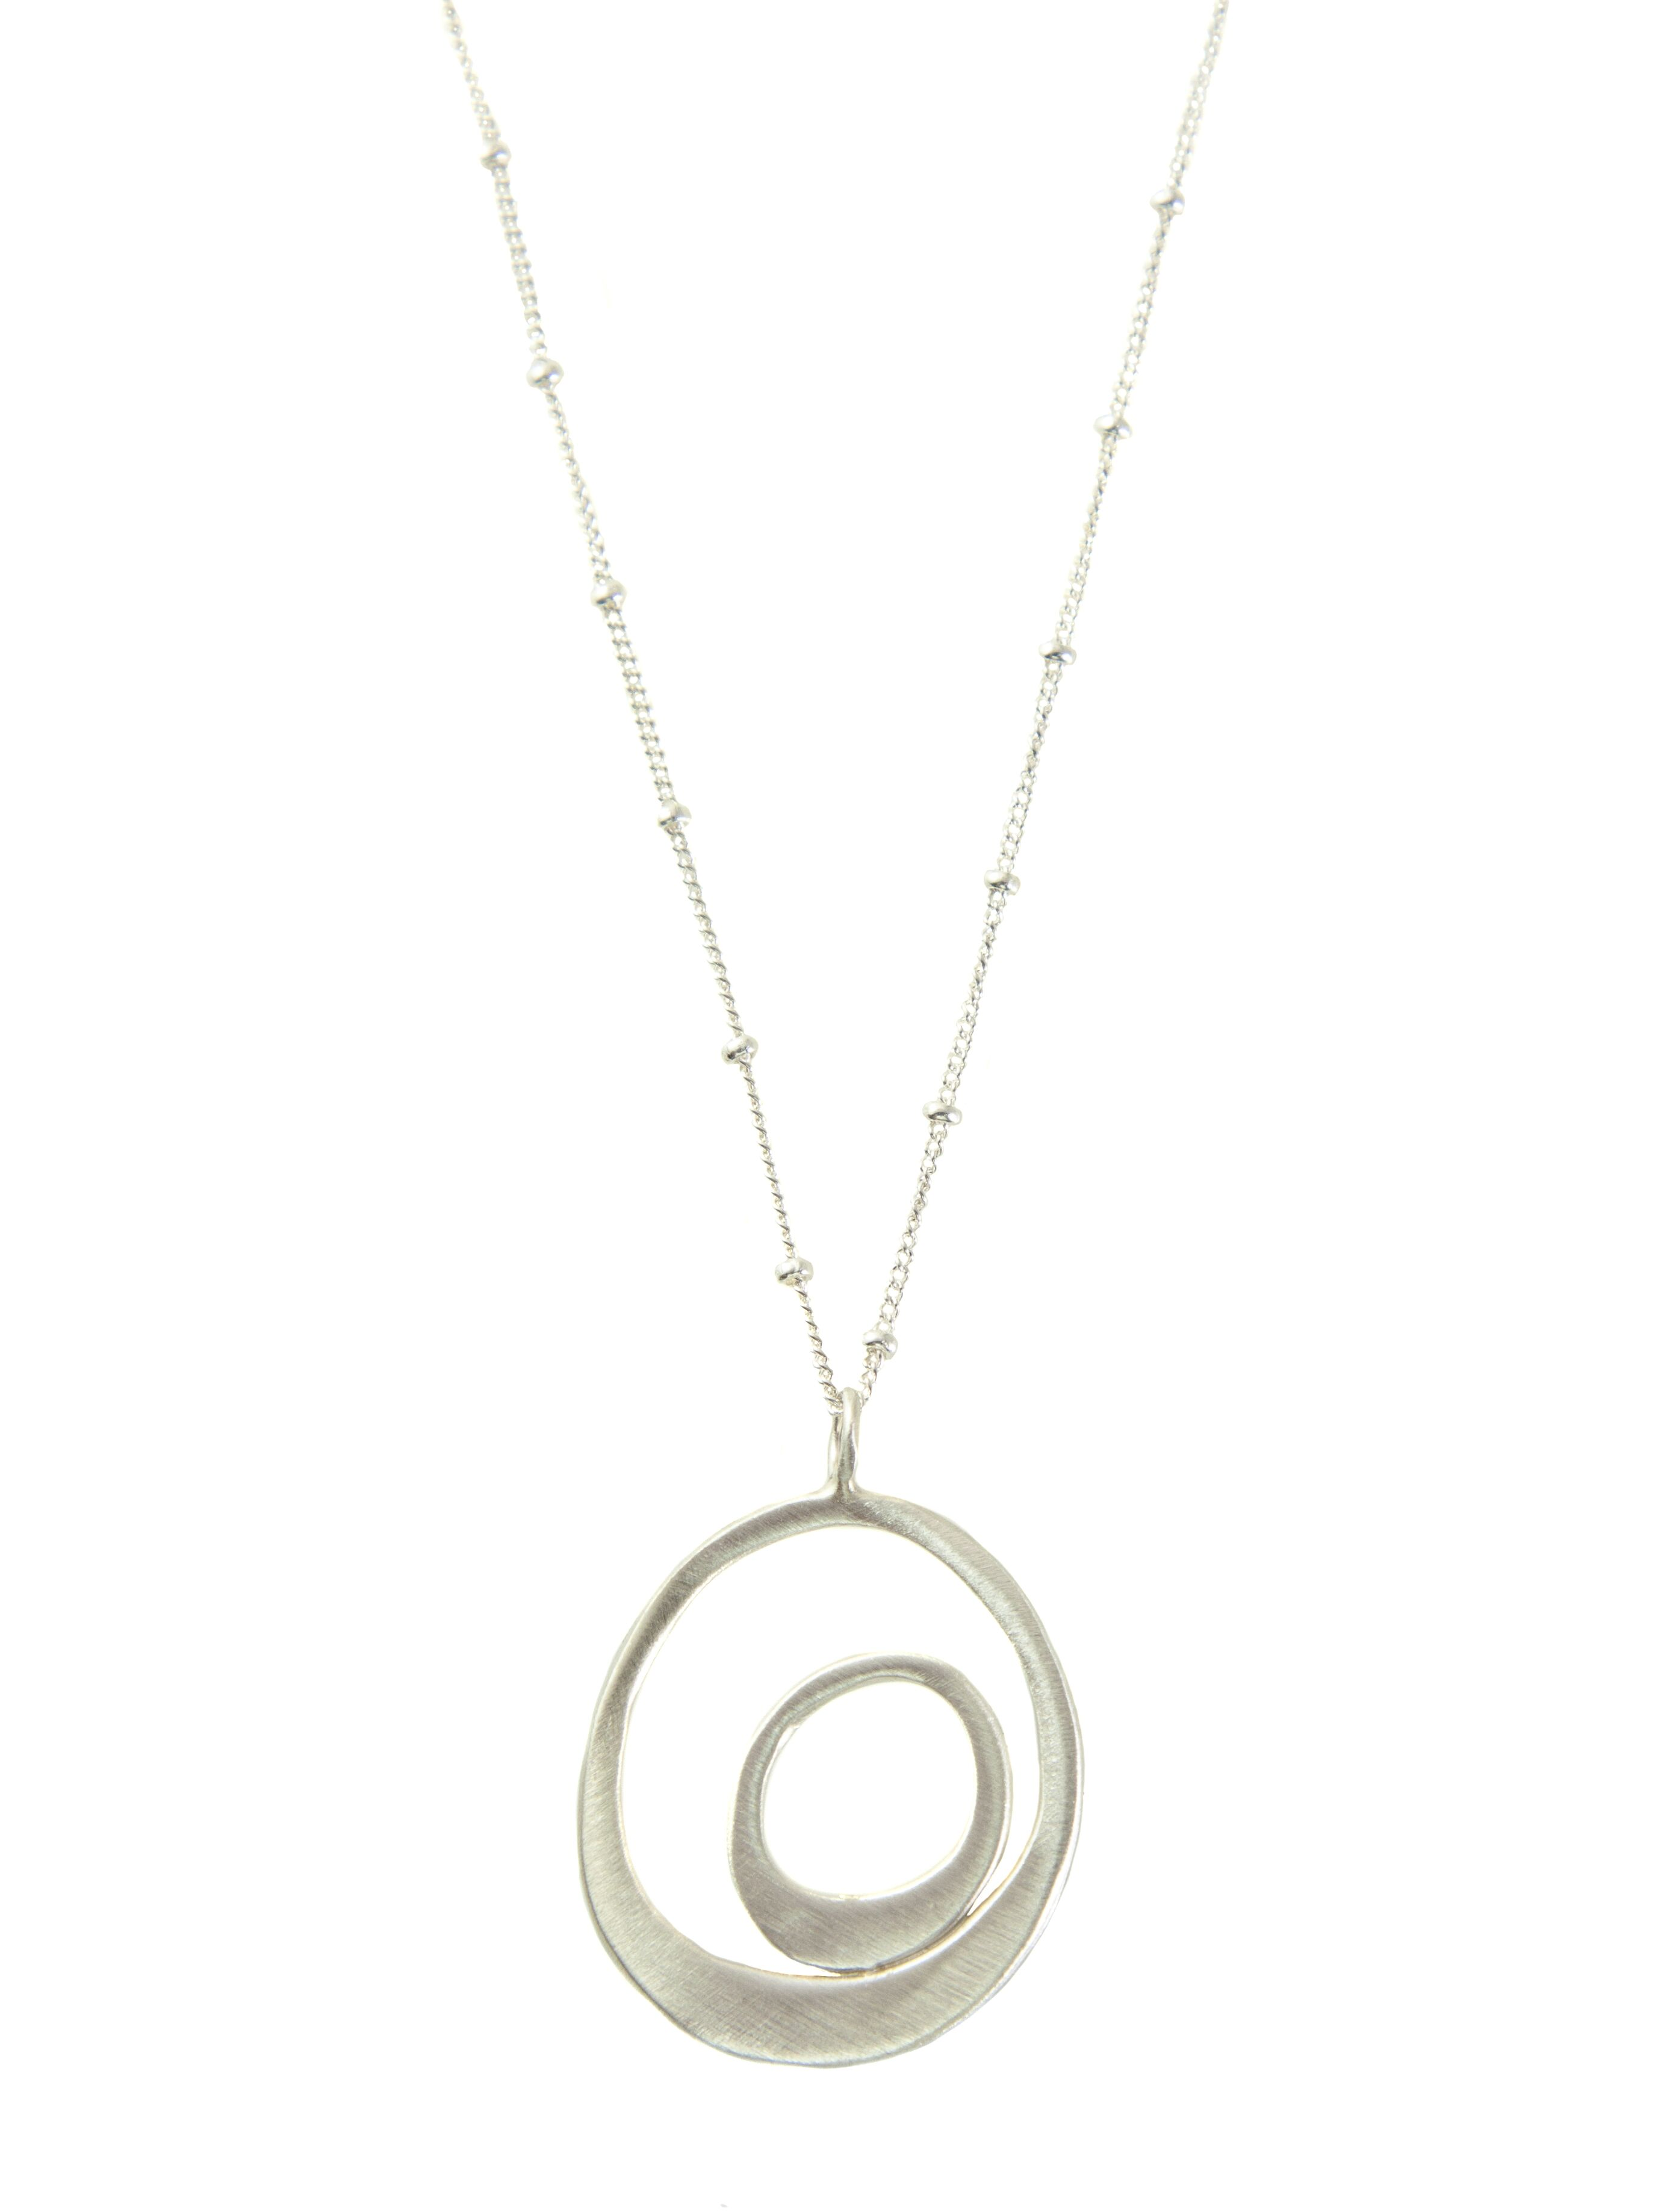 Inside Circle Sterling Silver Necklace